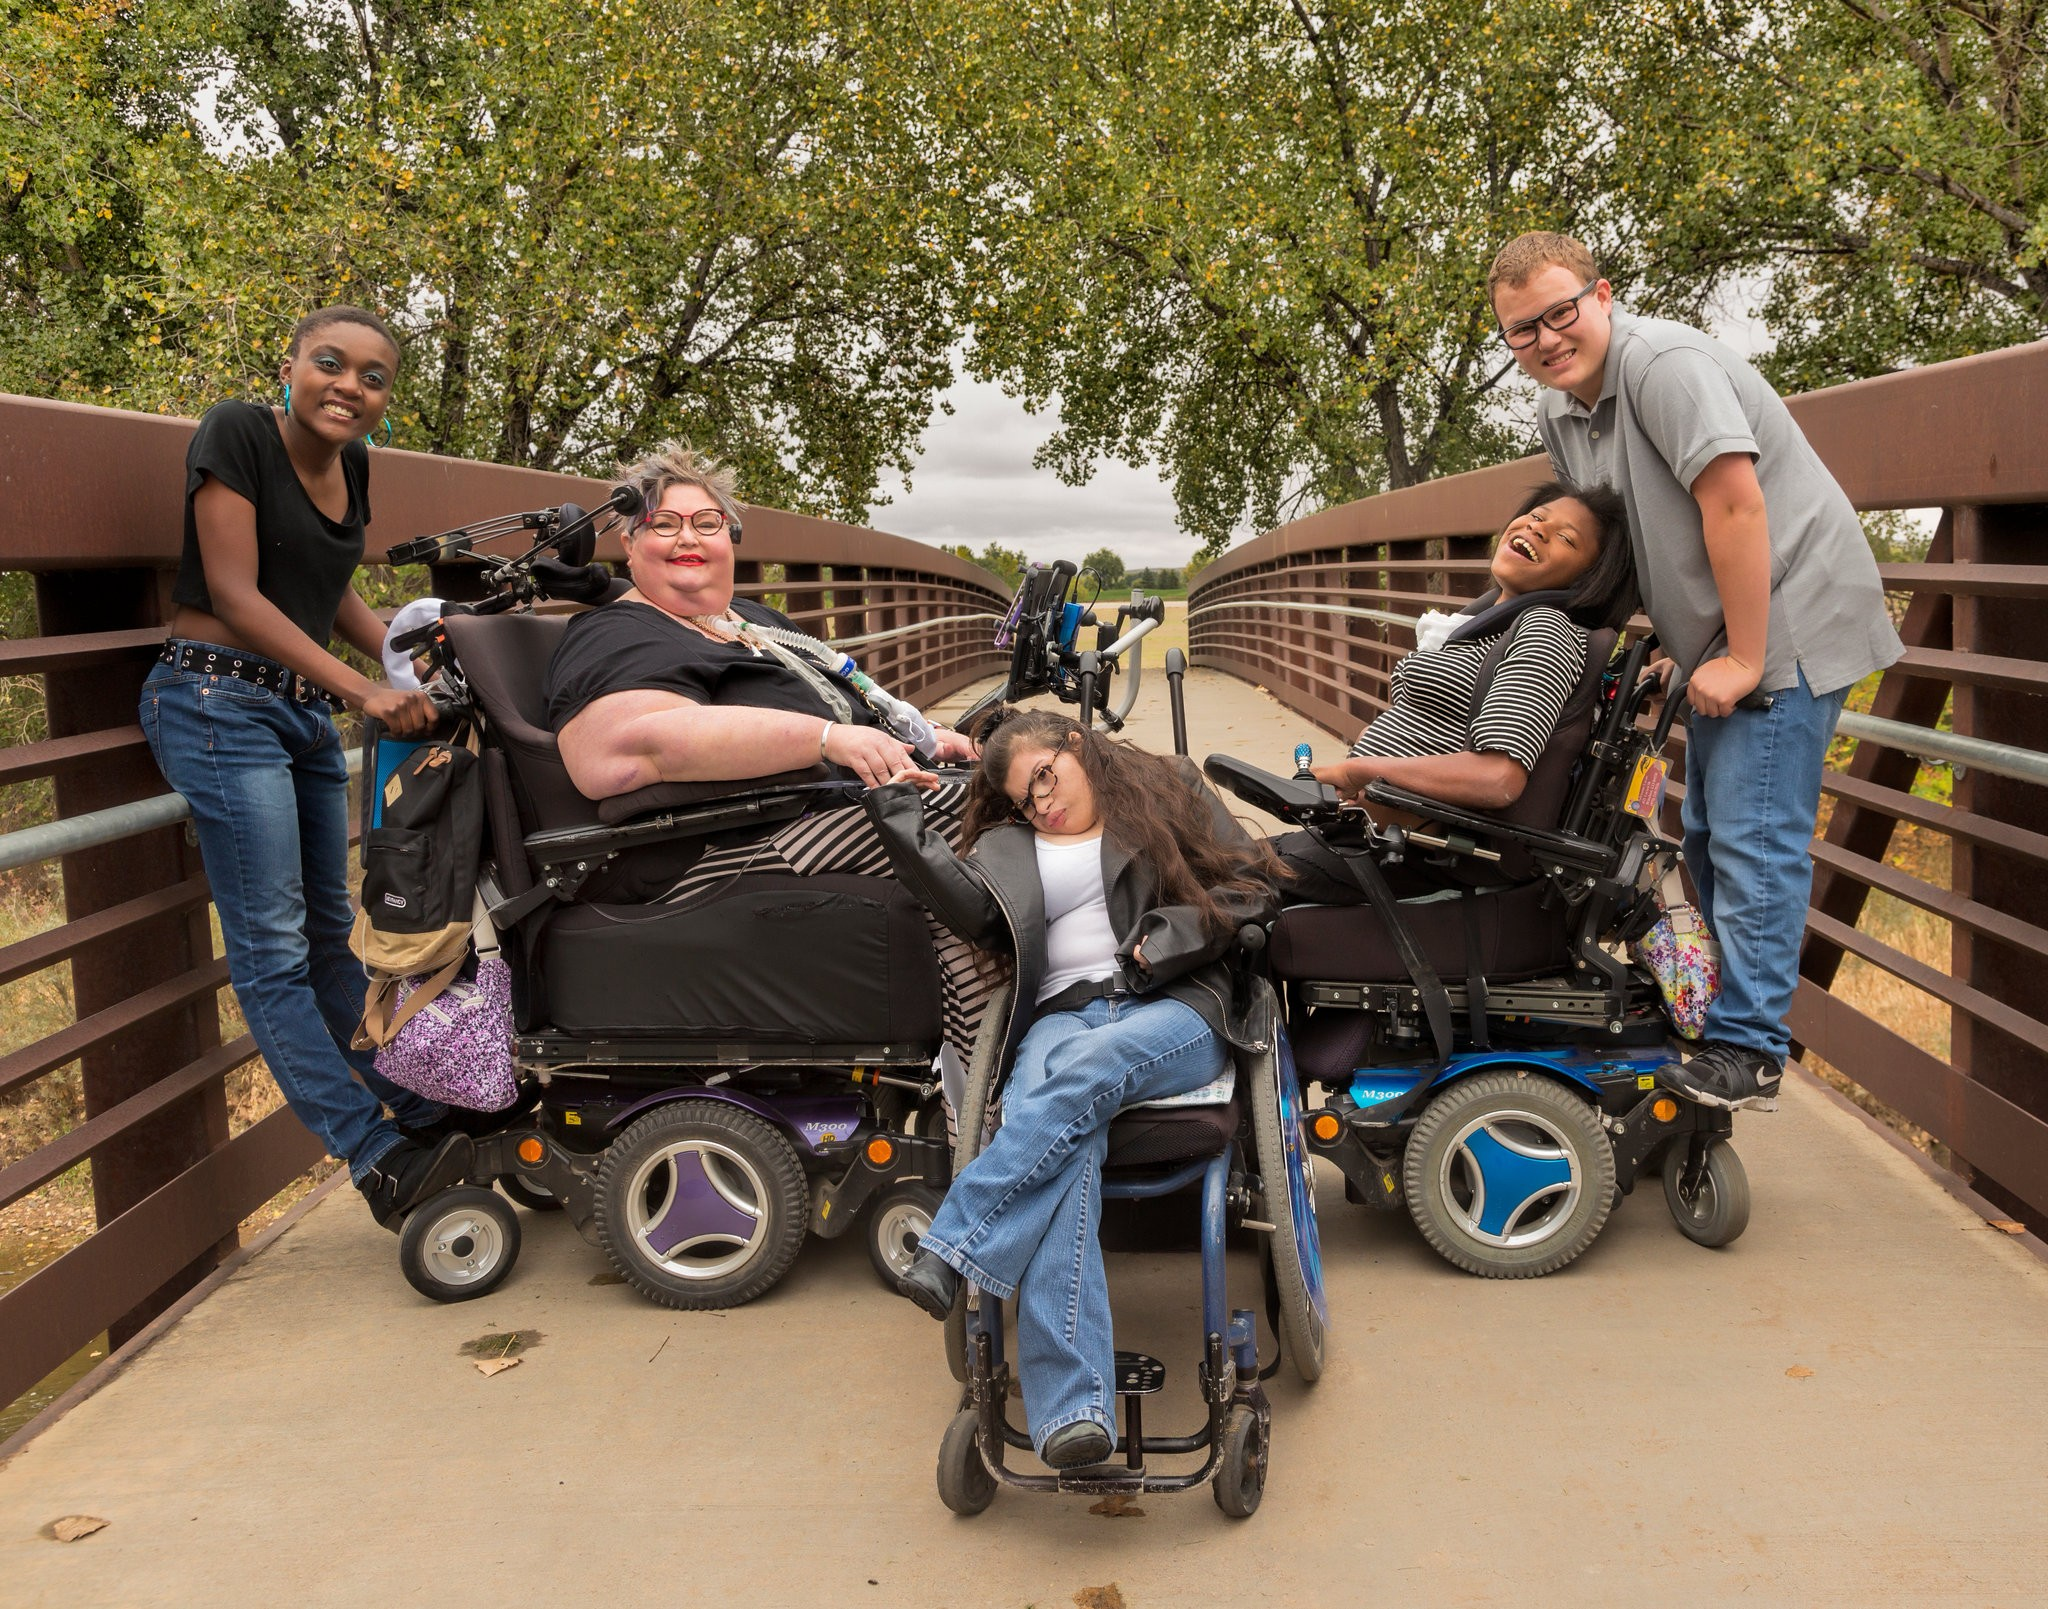 Carrie Ann Lucas, second from left, in 2018 in Windsor, Colo., with her children, from left, Asiza, Heather, Adrianne and Anthony. Ms. Lucas fought for the rights of the disabled, especially those who are parents.